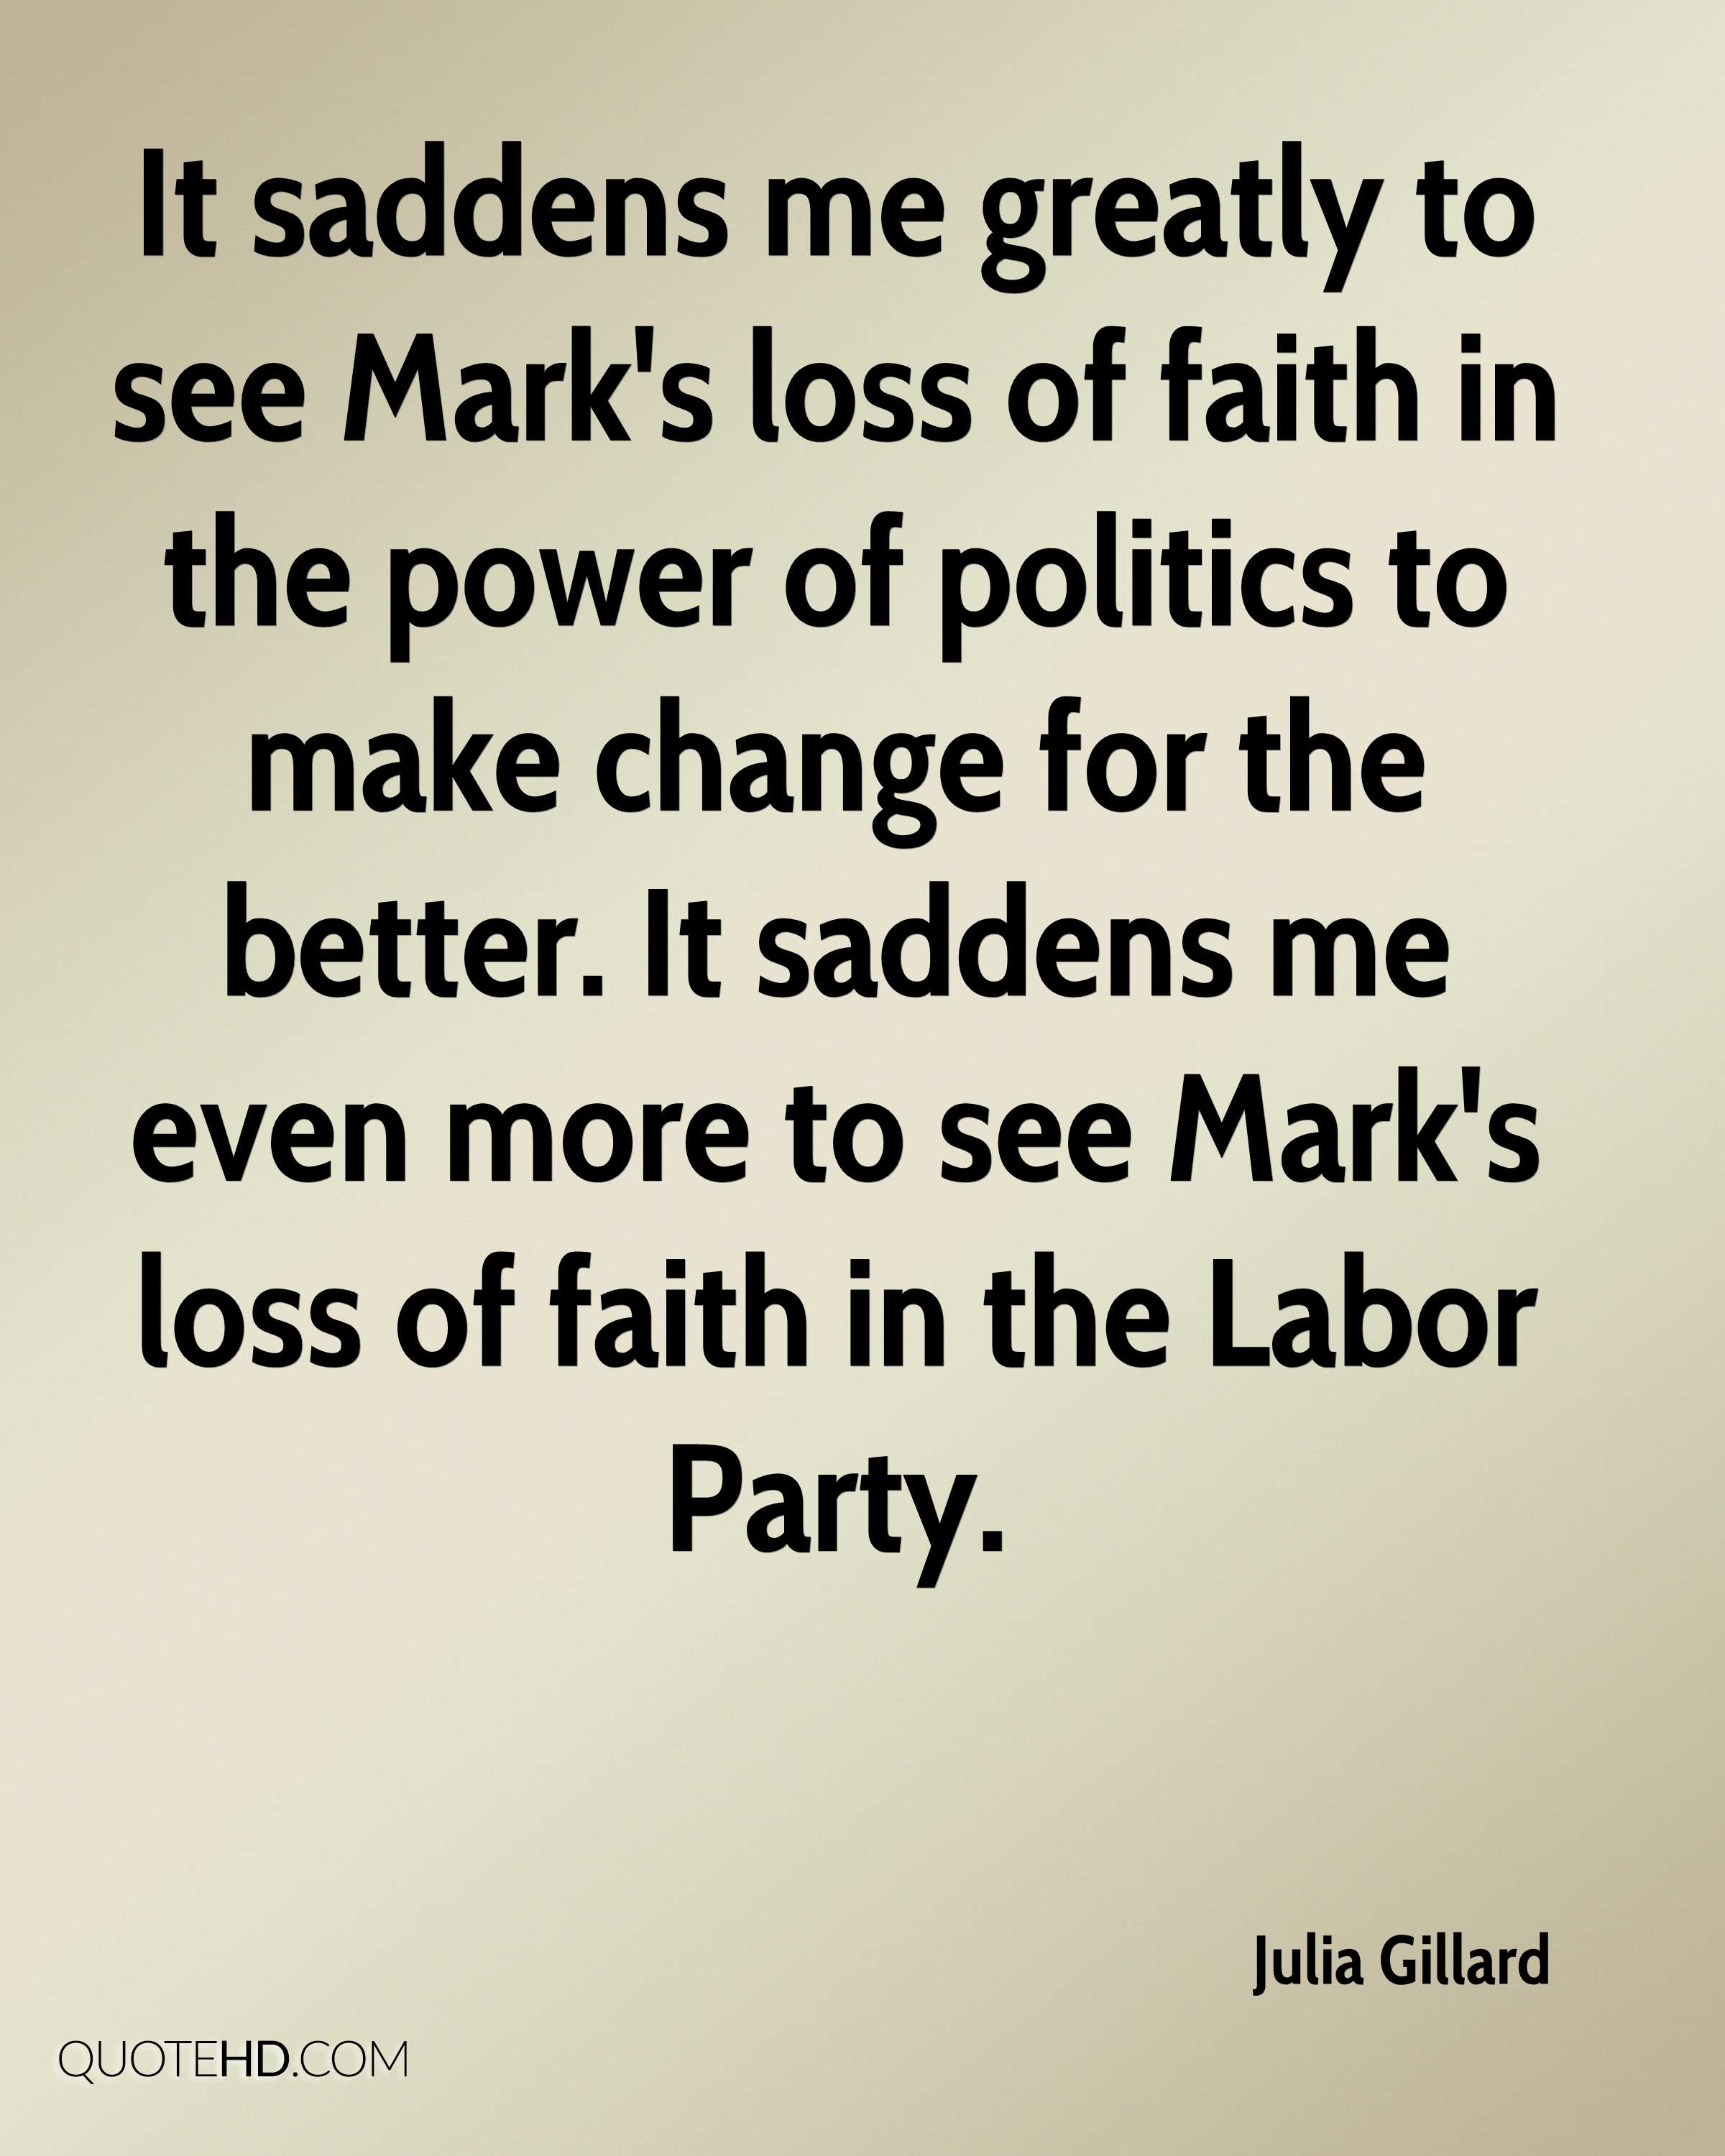 It saddens me greatly to see Mark's loss of faith in the power of politics to make change for the better. It saddens me even more to see Mark's loss of faith in the Labor Party.